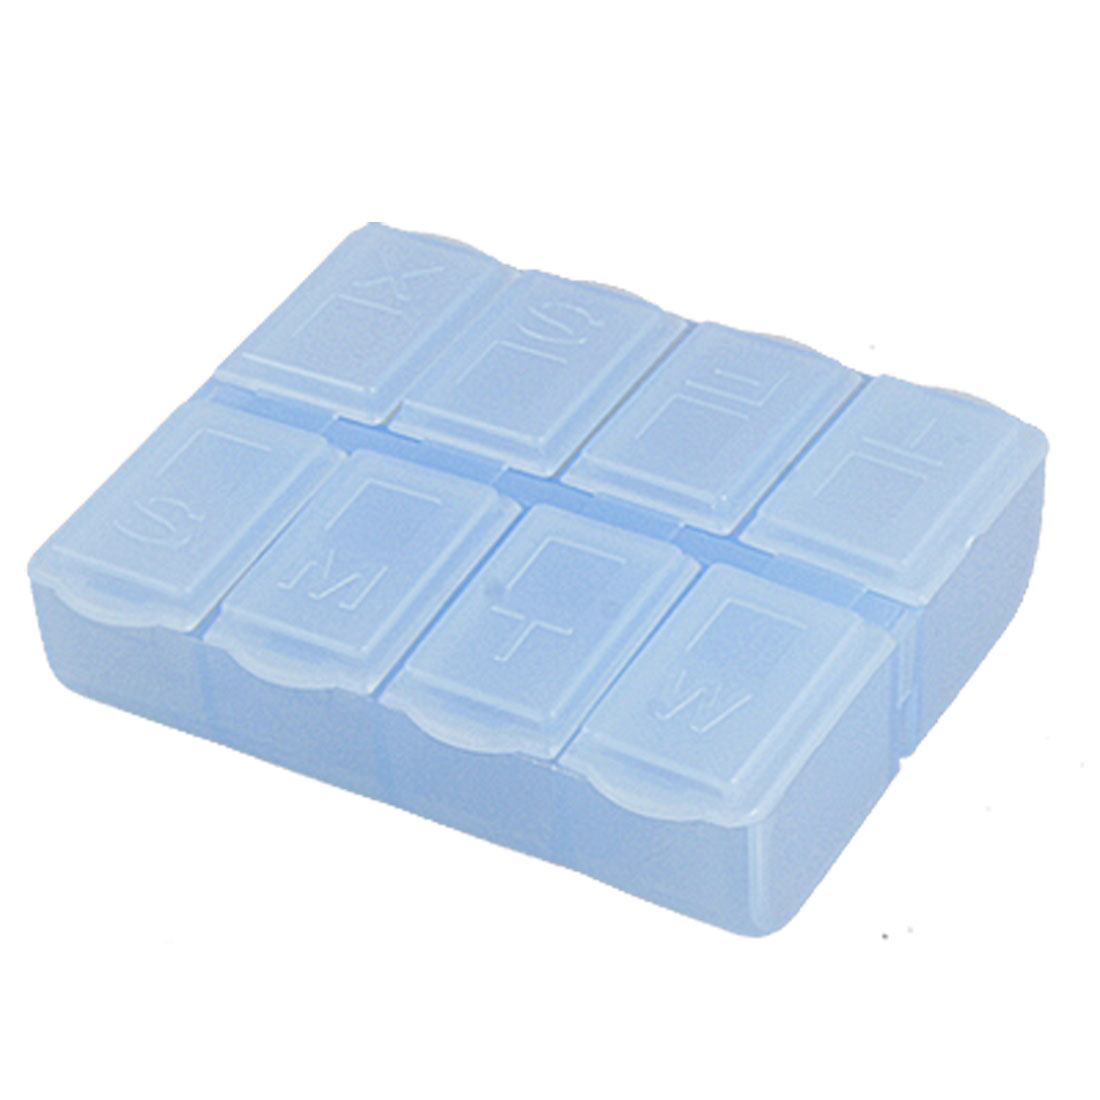 Daily Marked Clear Blue 8 Compartments Medicine Pill Case Box